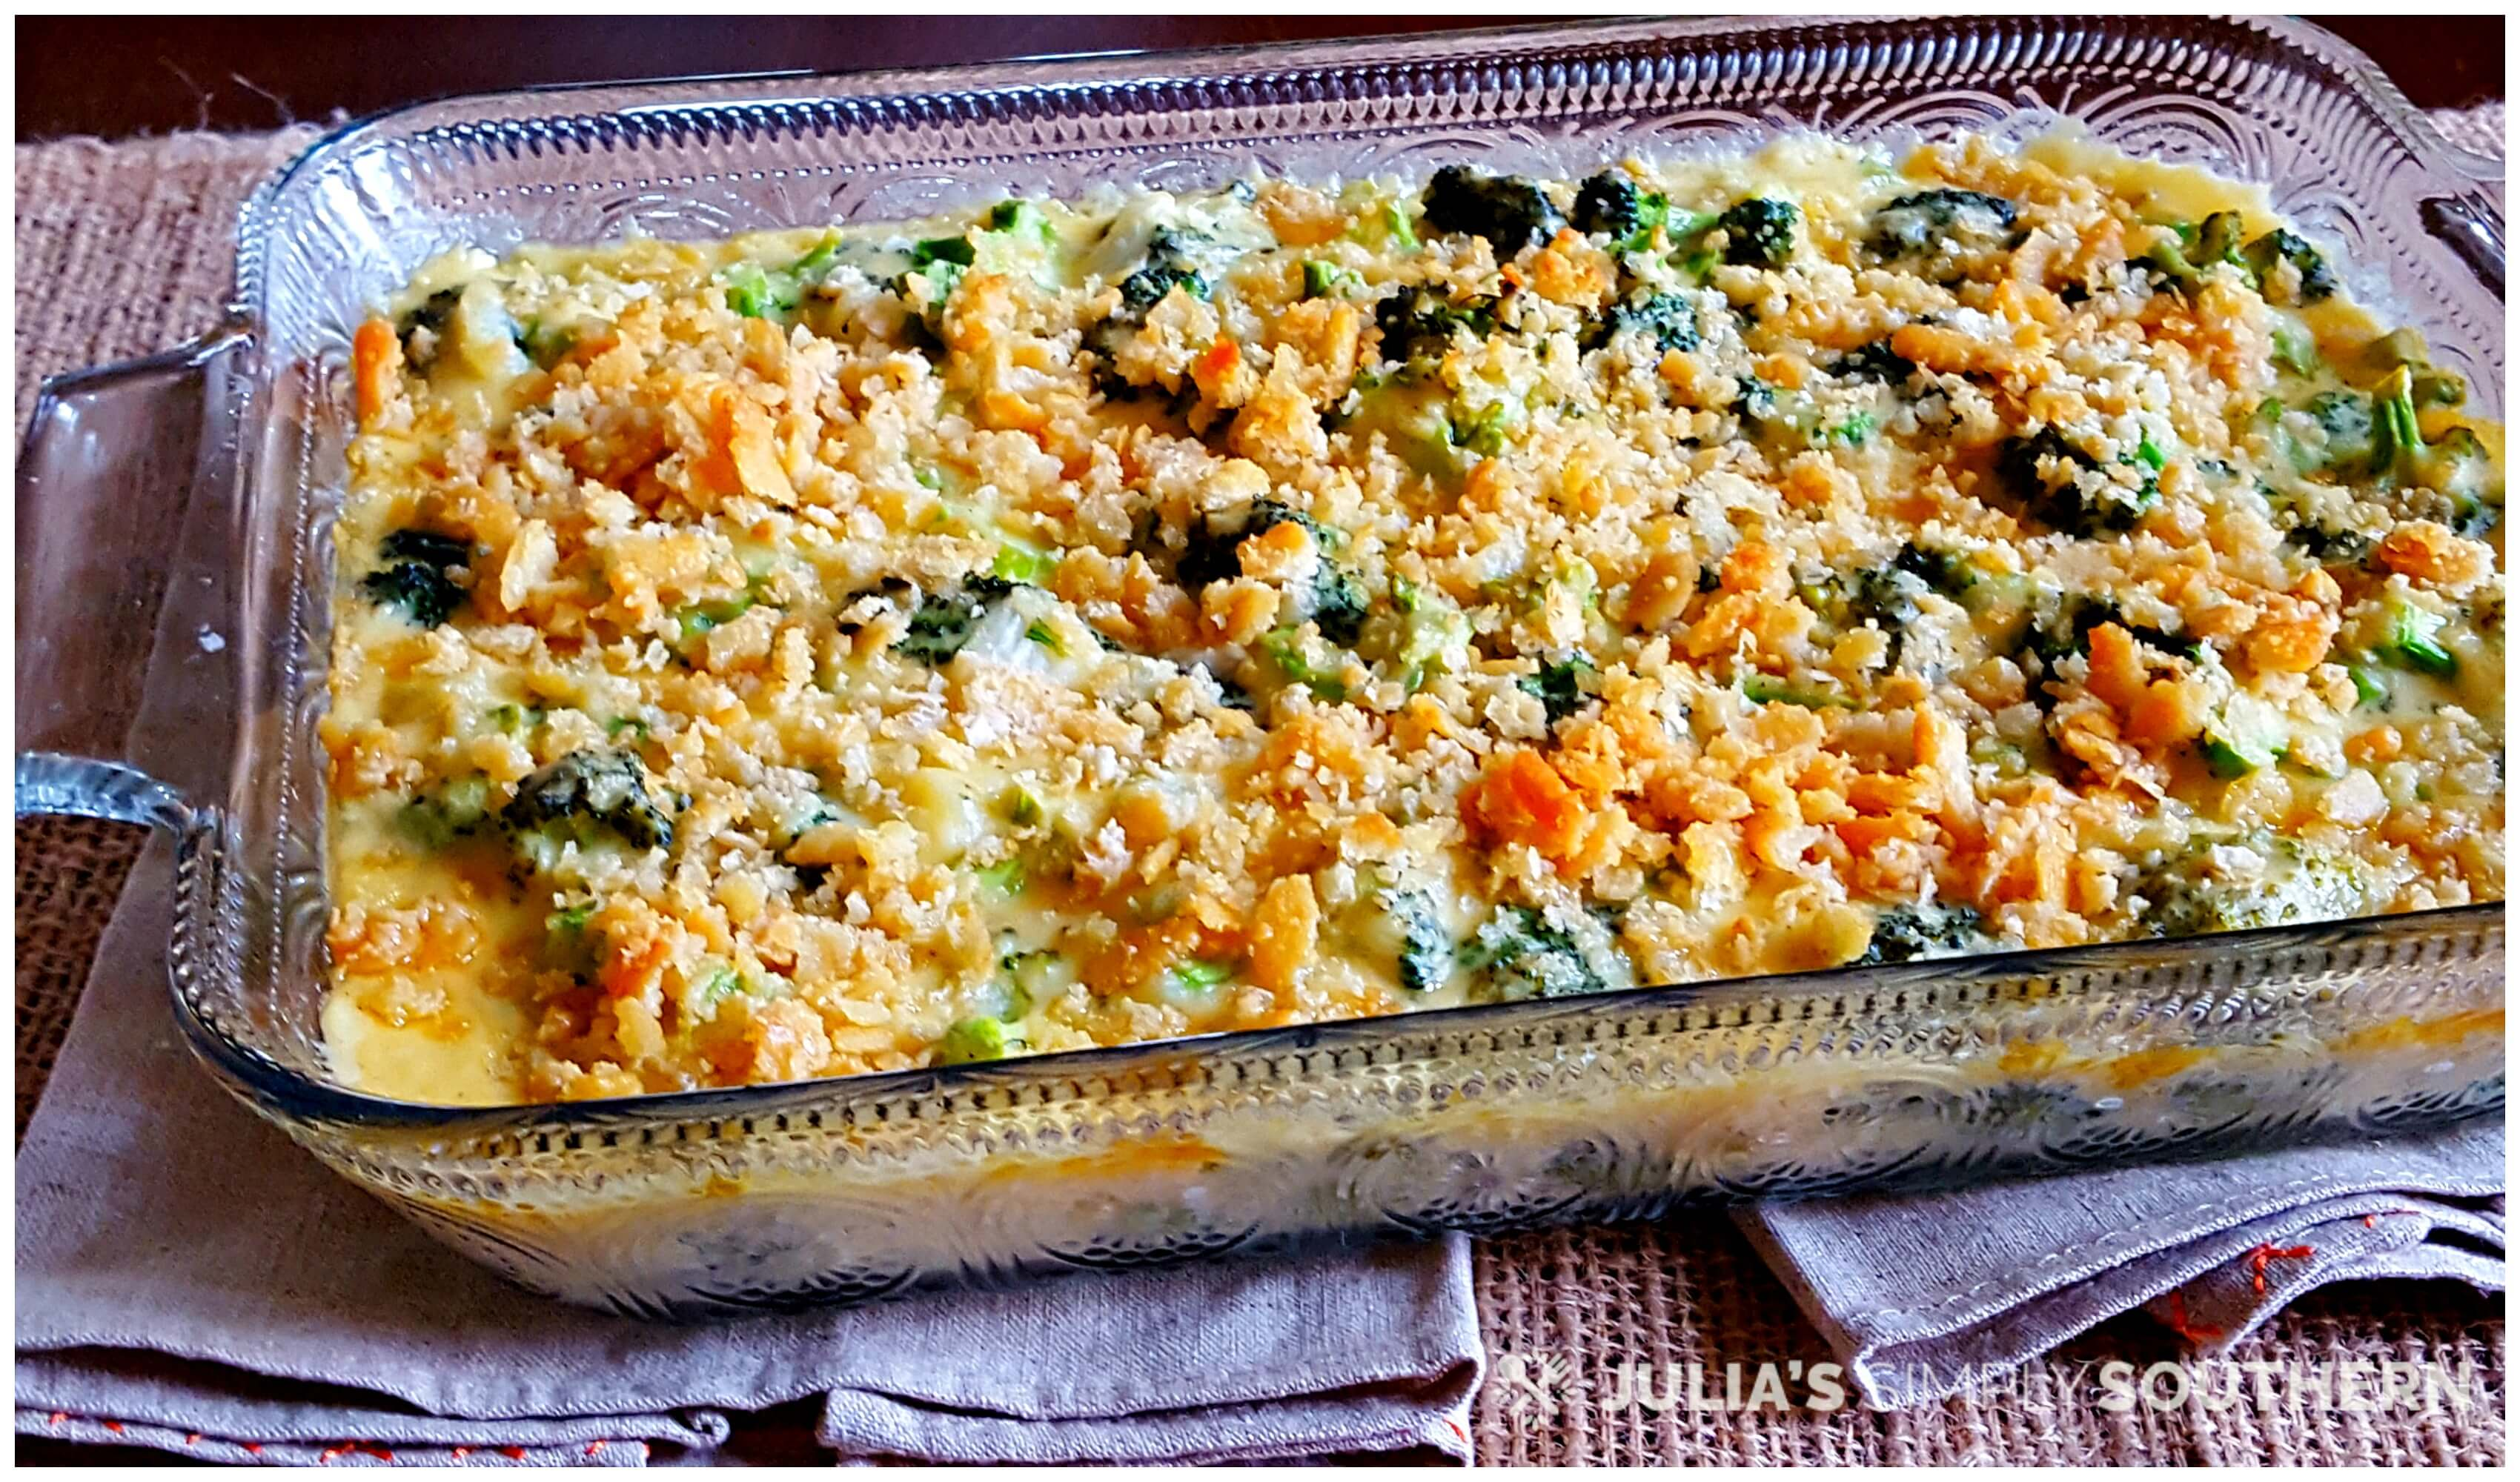 Glass casserole dish with baked broccoli and cheese topped with Ritz